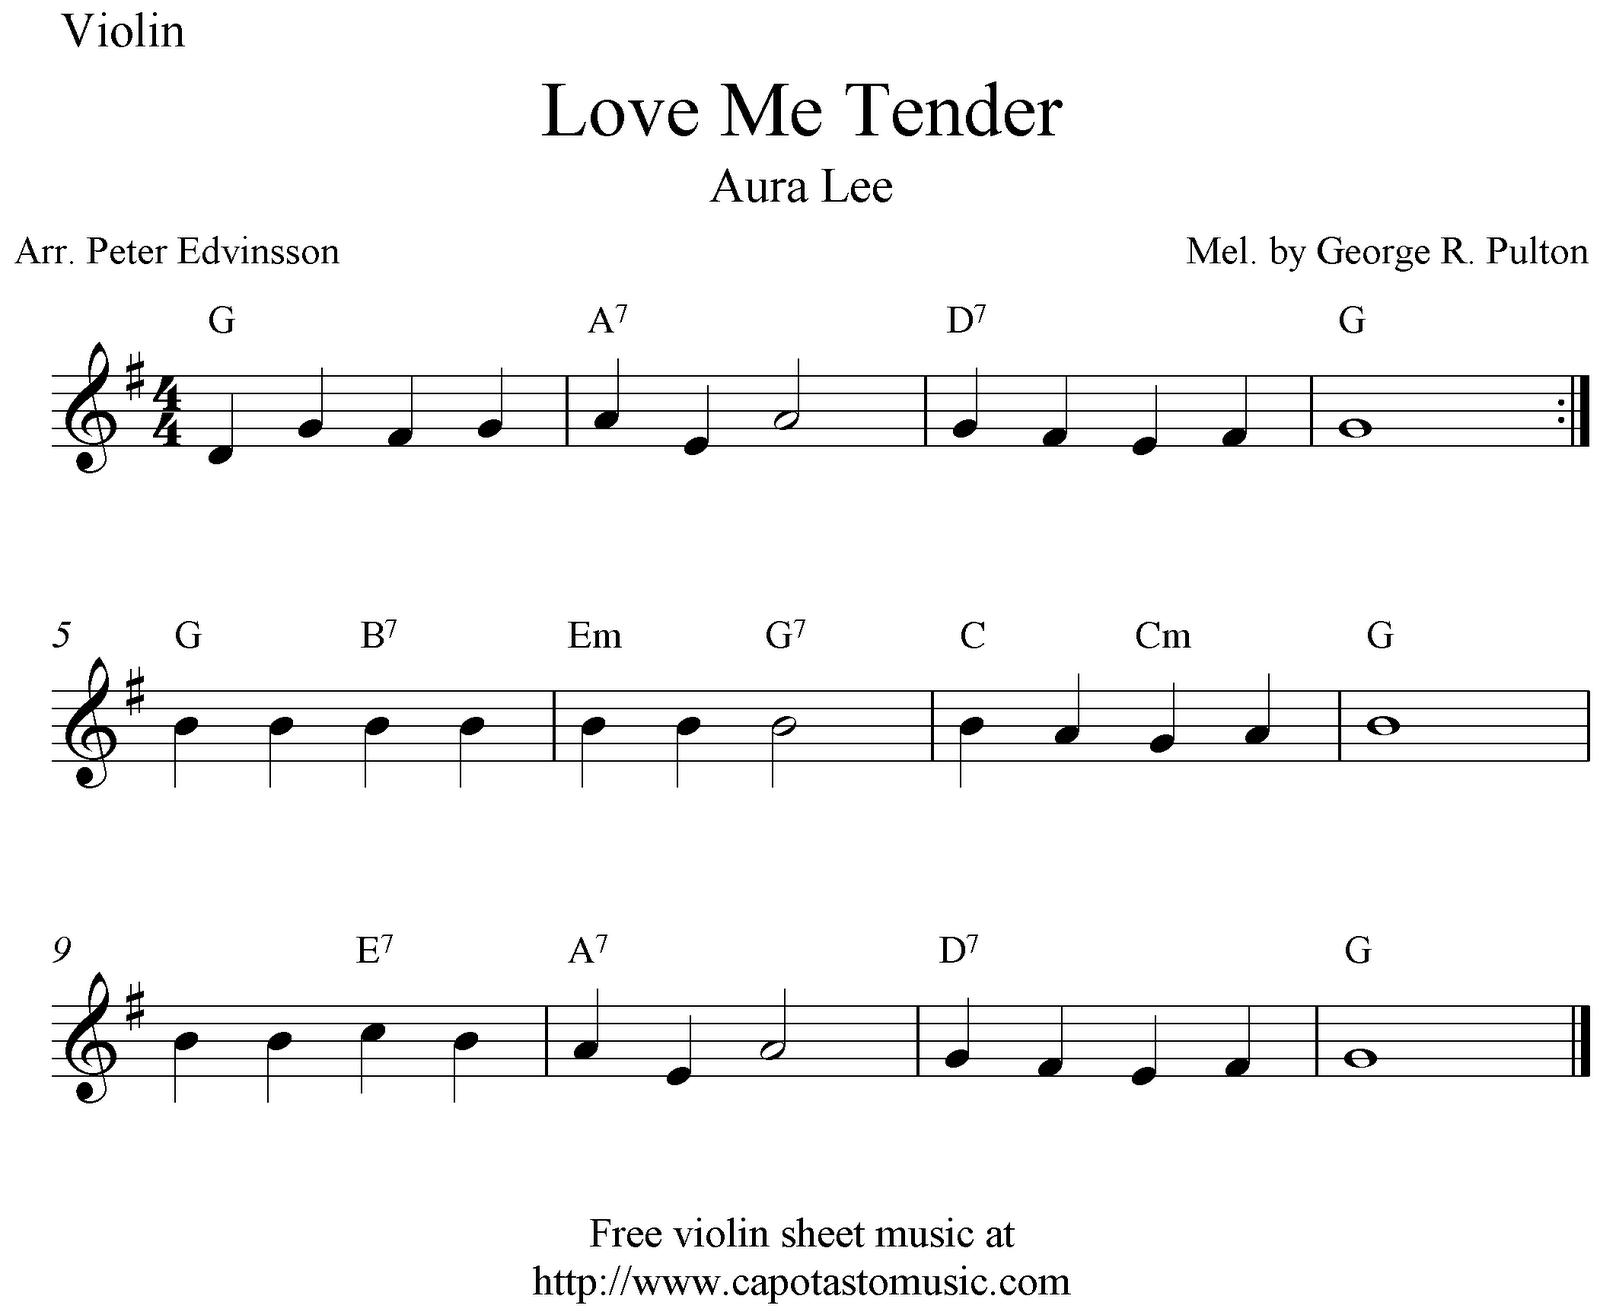 Love Me Tender Aura Lee Free Violin Sheet Music Notes